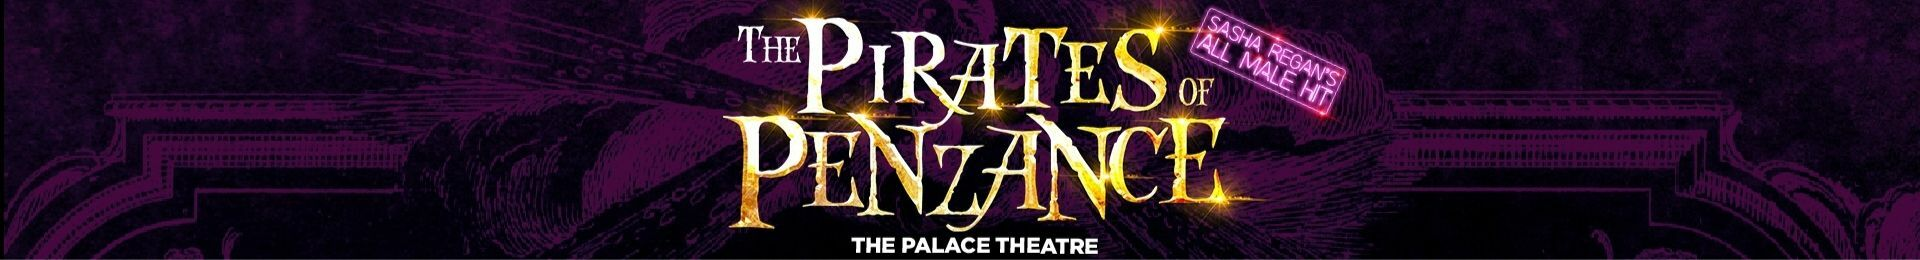 Sasha Regan's The Pirates of Penzance banner image